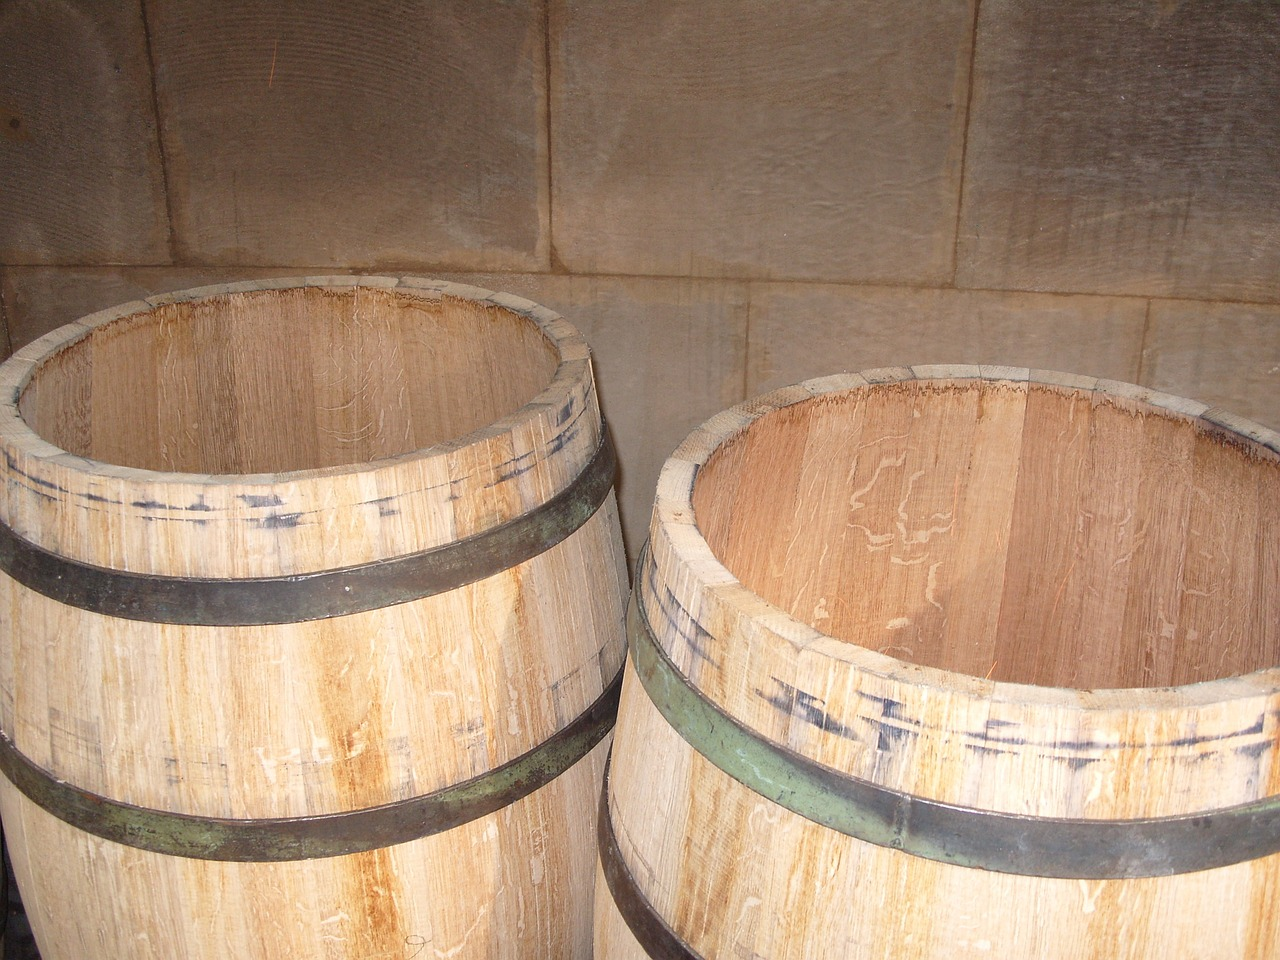 barrels,wine,winery,cellar,wood,wooden,cask,alcohol,storage,viticulture,free pictures, free photos, free images, royalty free, free illustrations